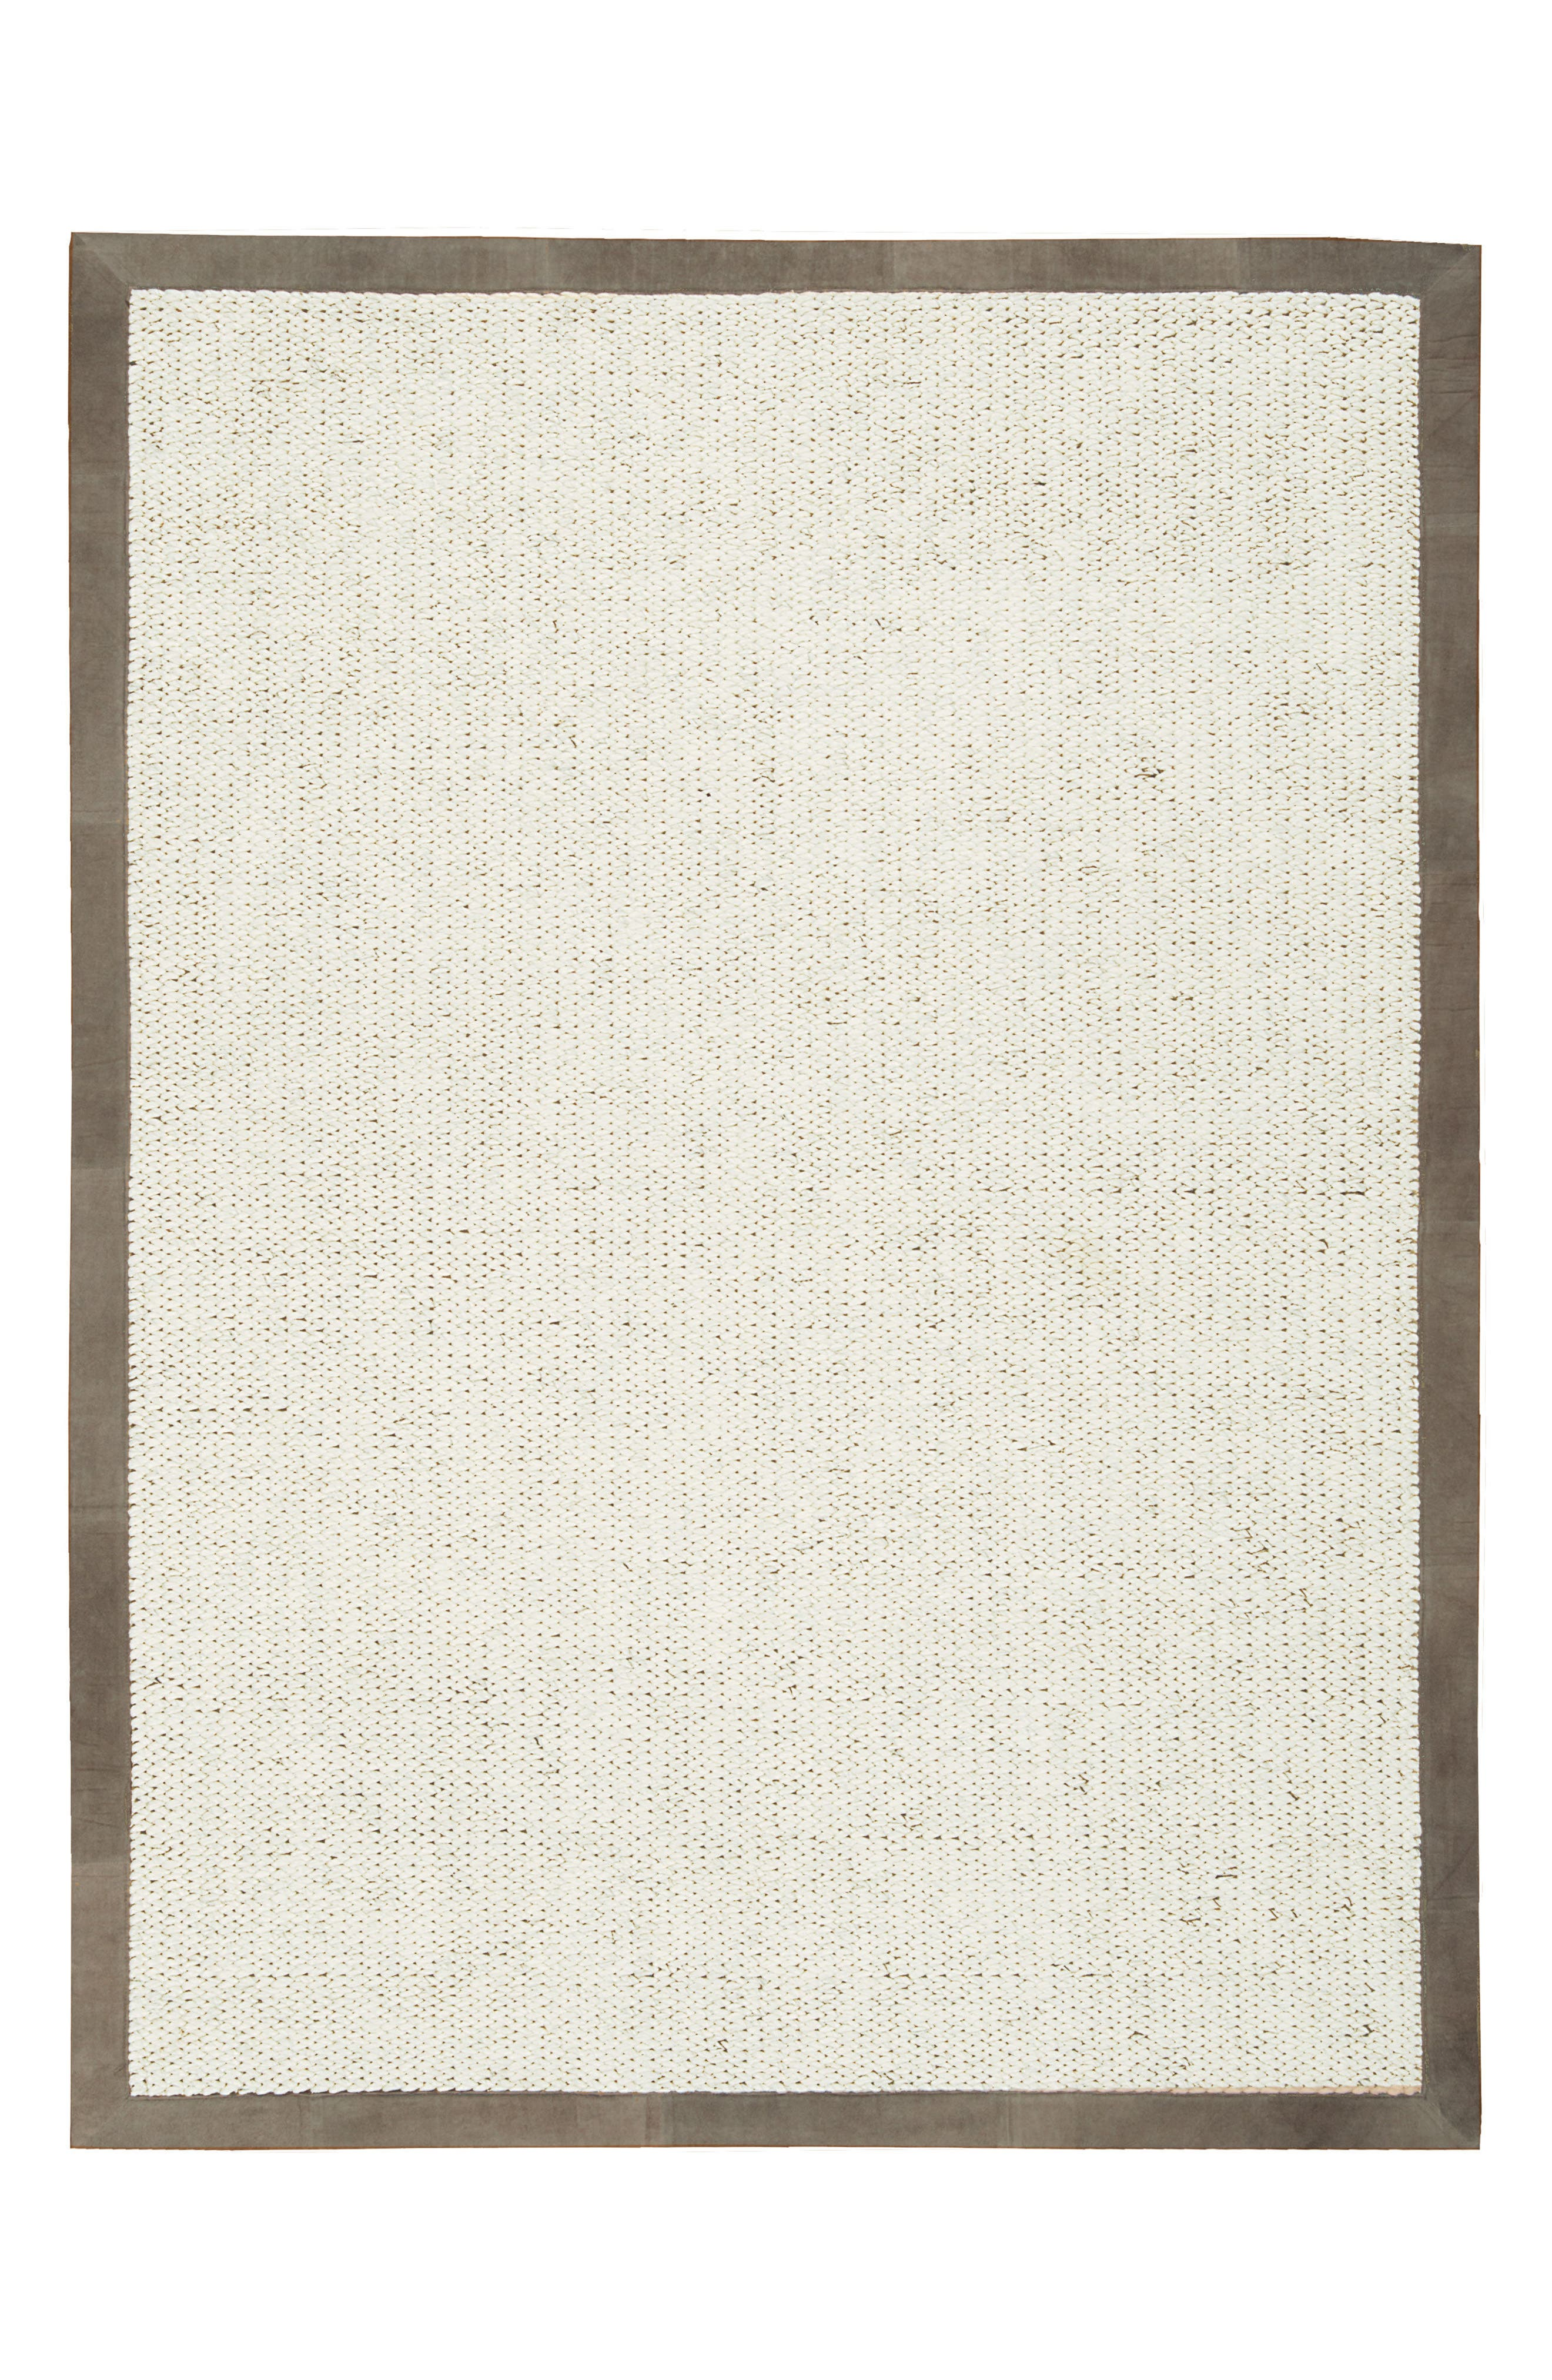 CK Collection Lucia Area Rug,                             Main thumbnail 1, color,                             120